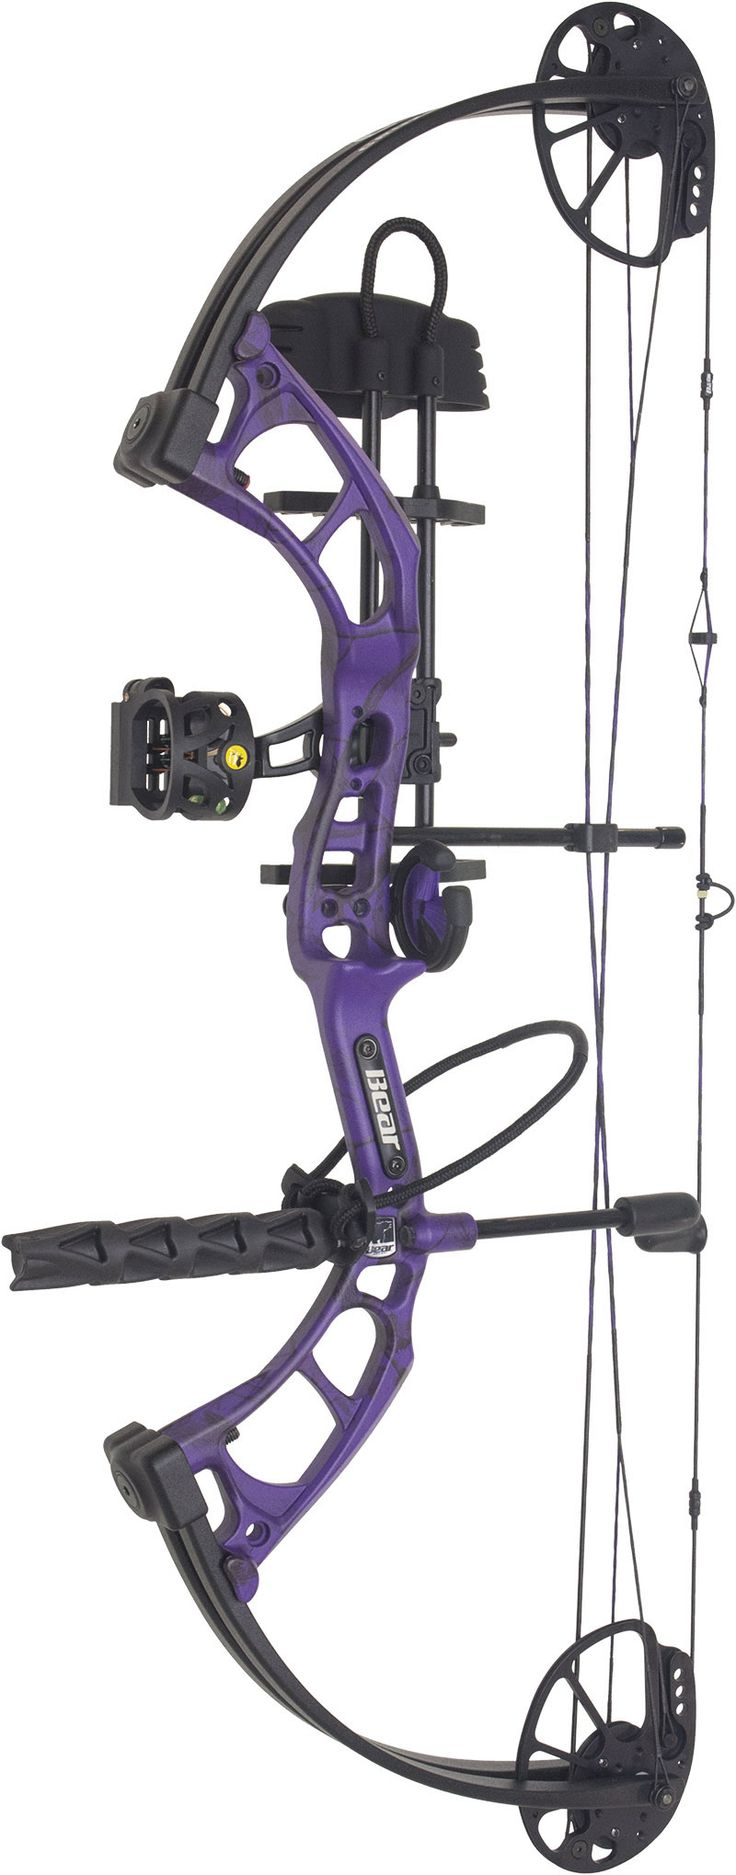 2015 bear purple cruzer compound bow package